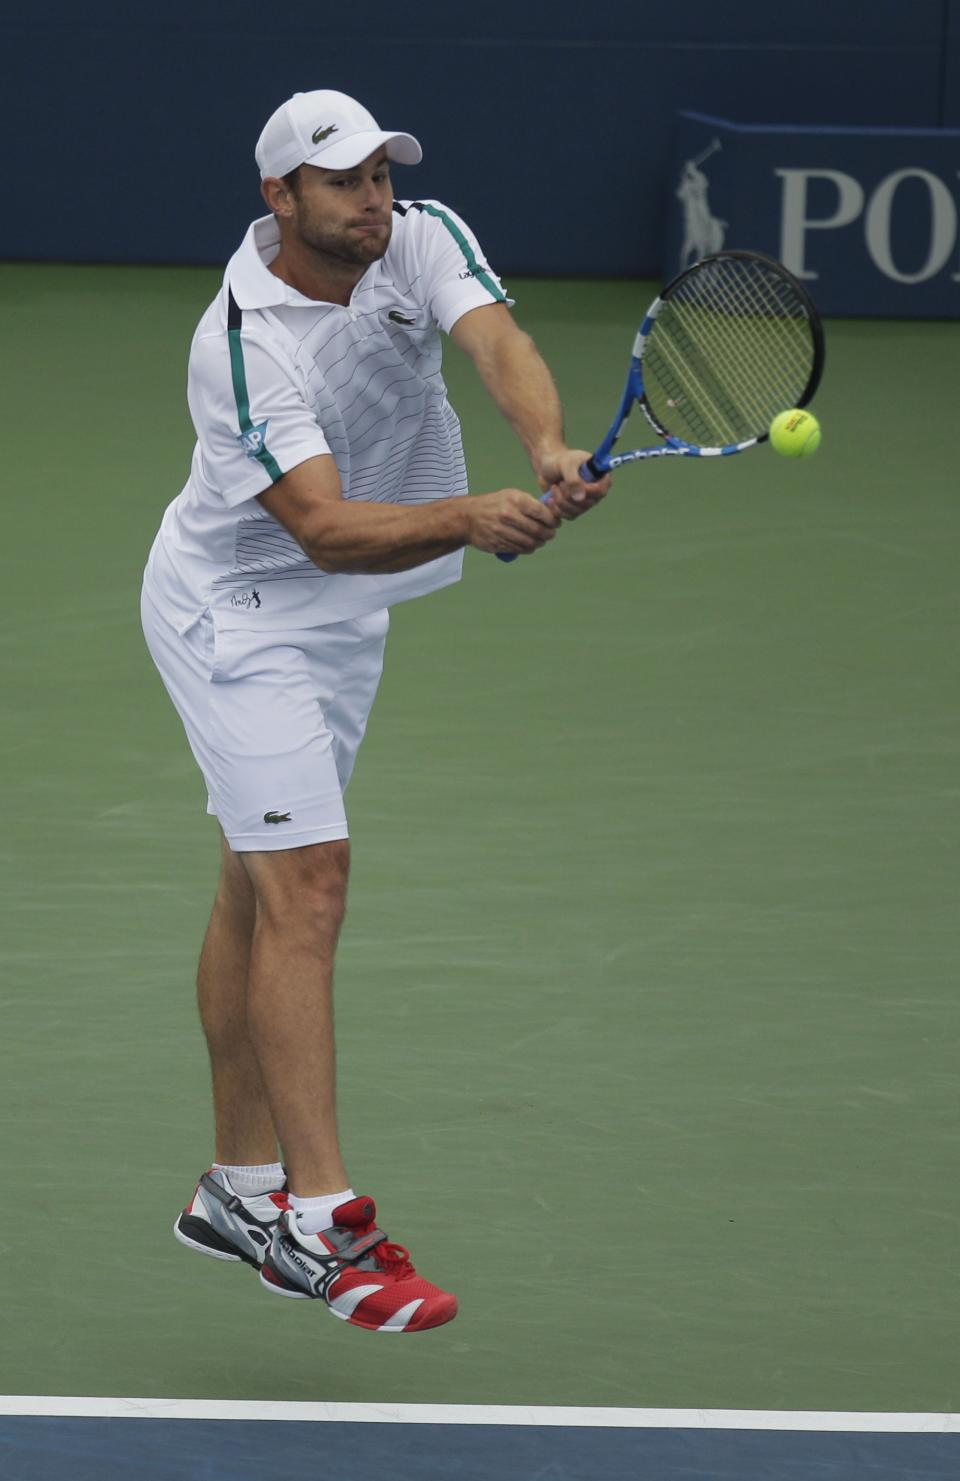 Andy Roddick of the United States returns to David Ferrer of Spain during the U.S. Open tennis tournament in New York, Wednesday, Sept. 7, 2011. (AP Photo/Charlie Riedel)